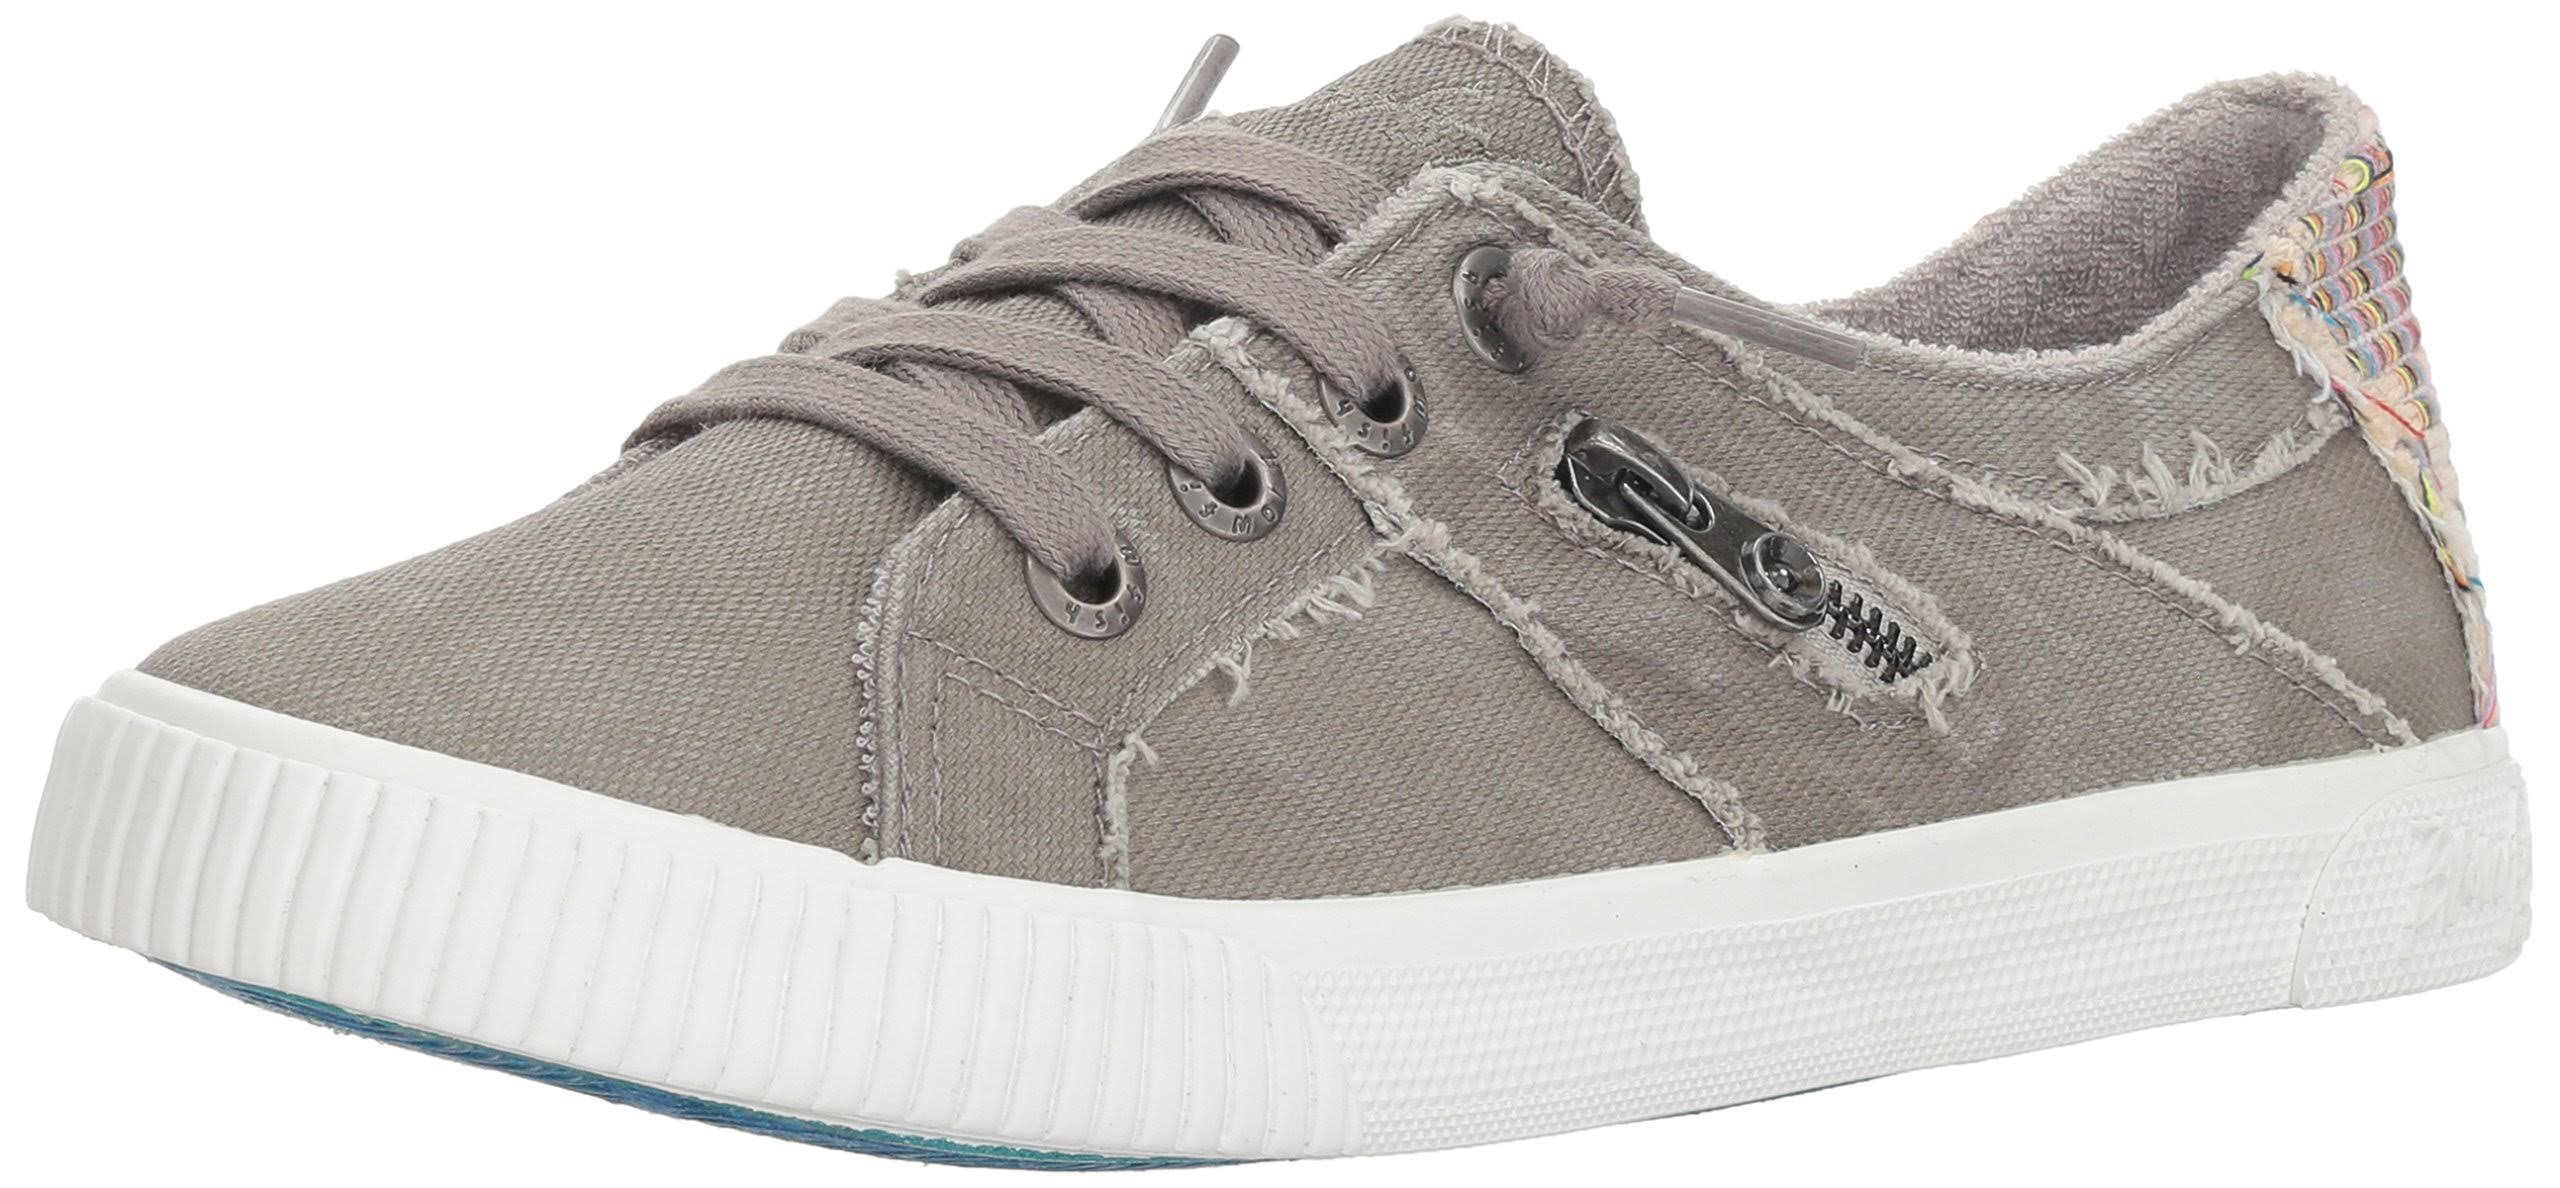 Blowfish Women's Fruit Wolf Sneakers - Grey, 7.5 USW